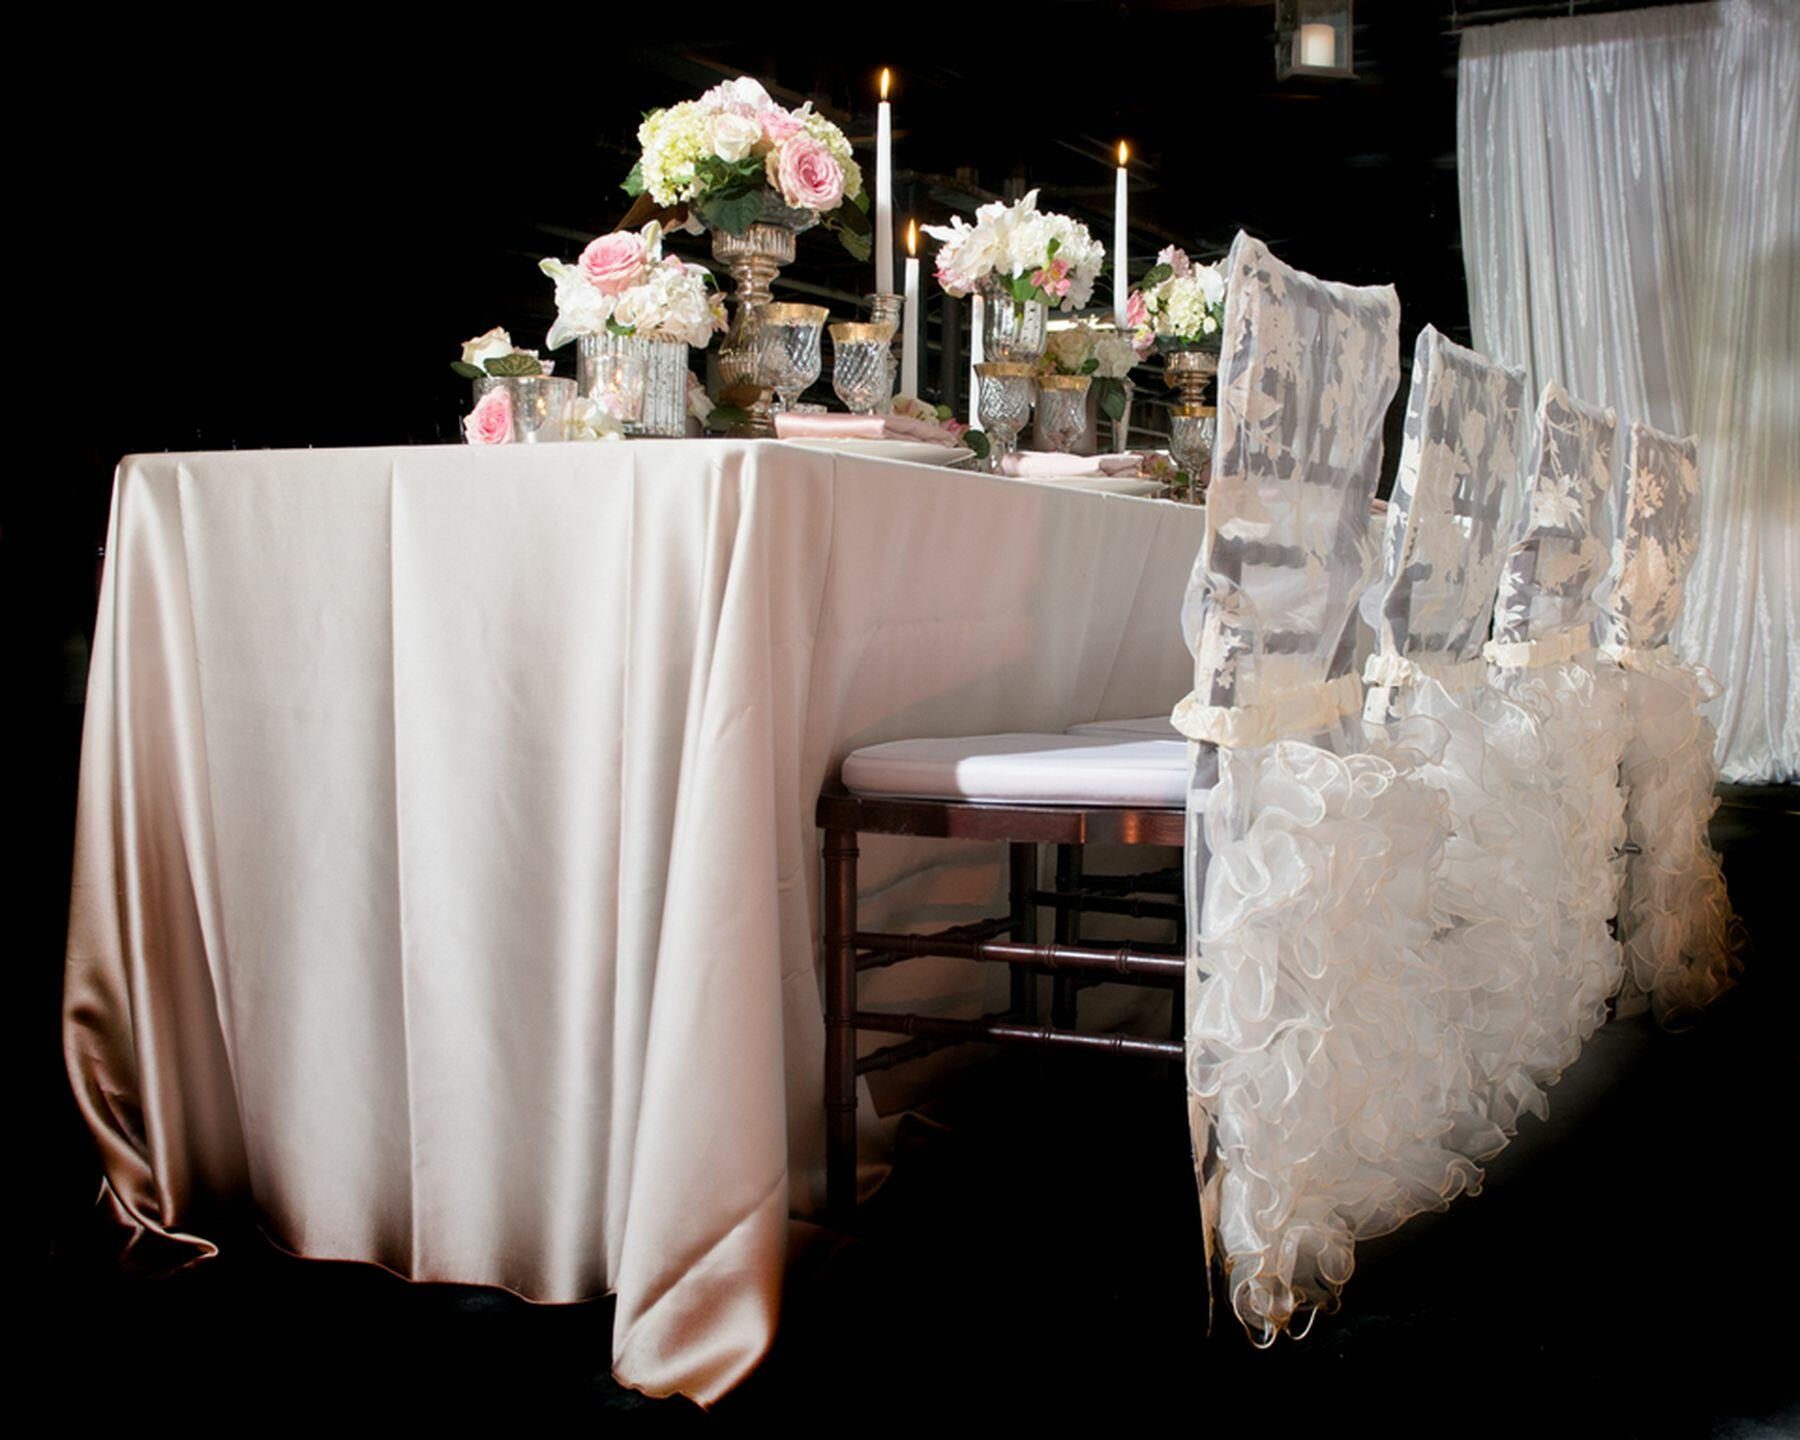 Wedding reception table with floral centerpiece.